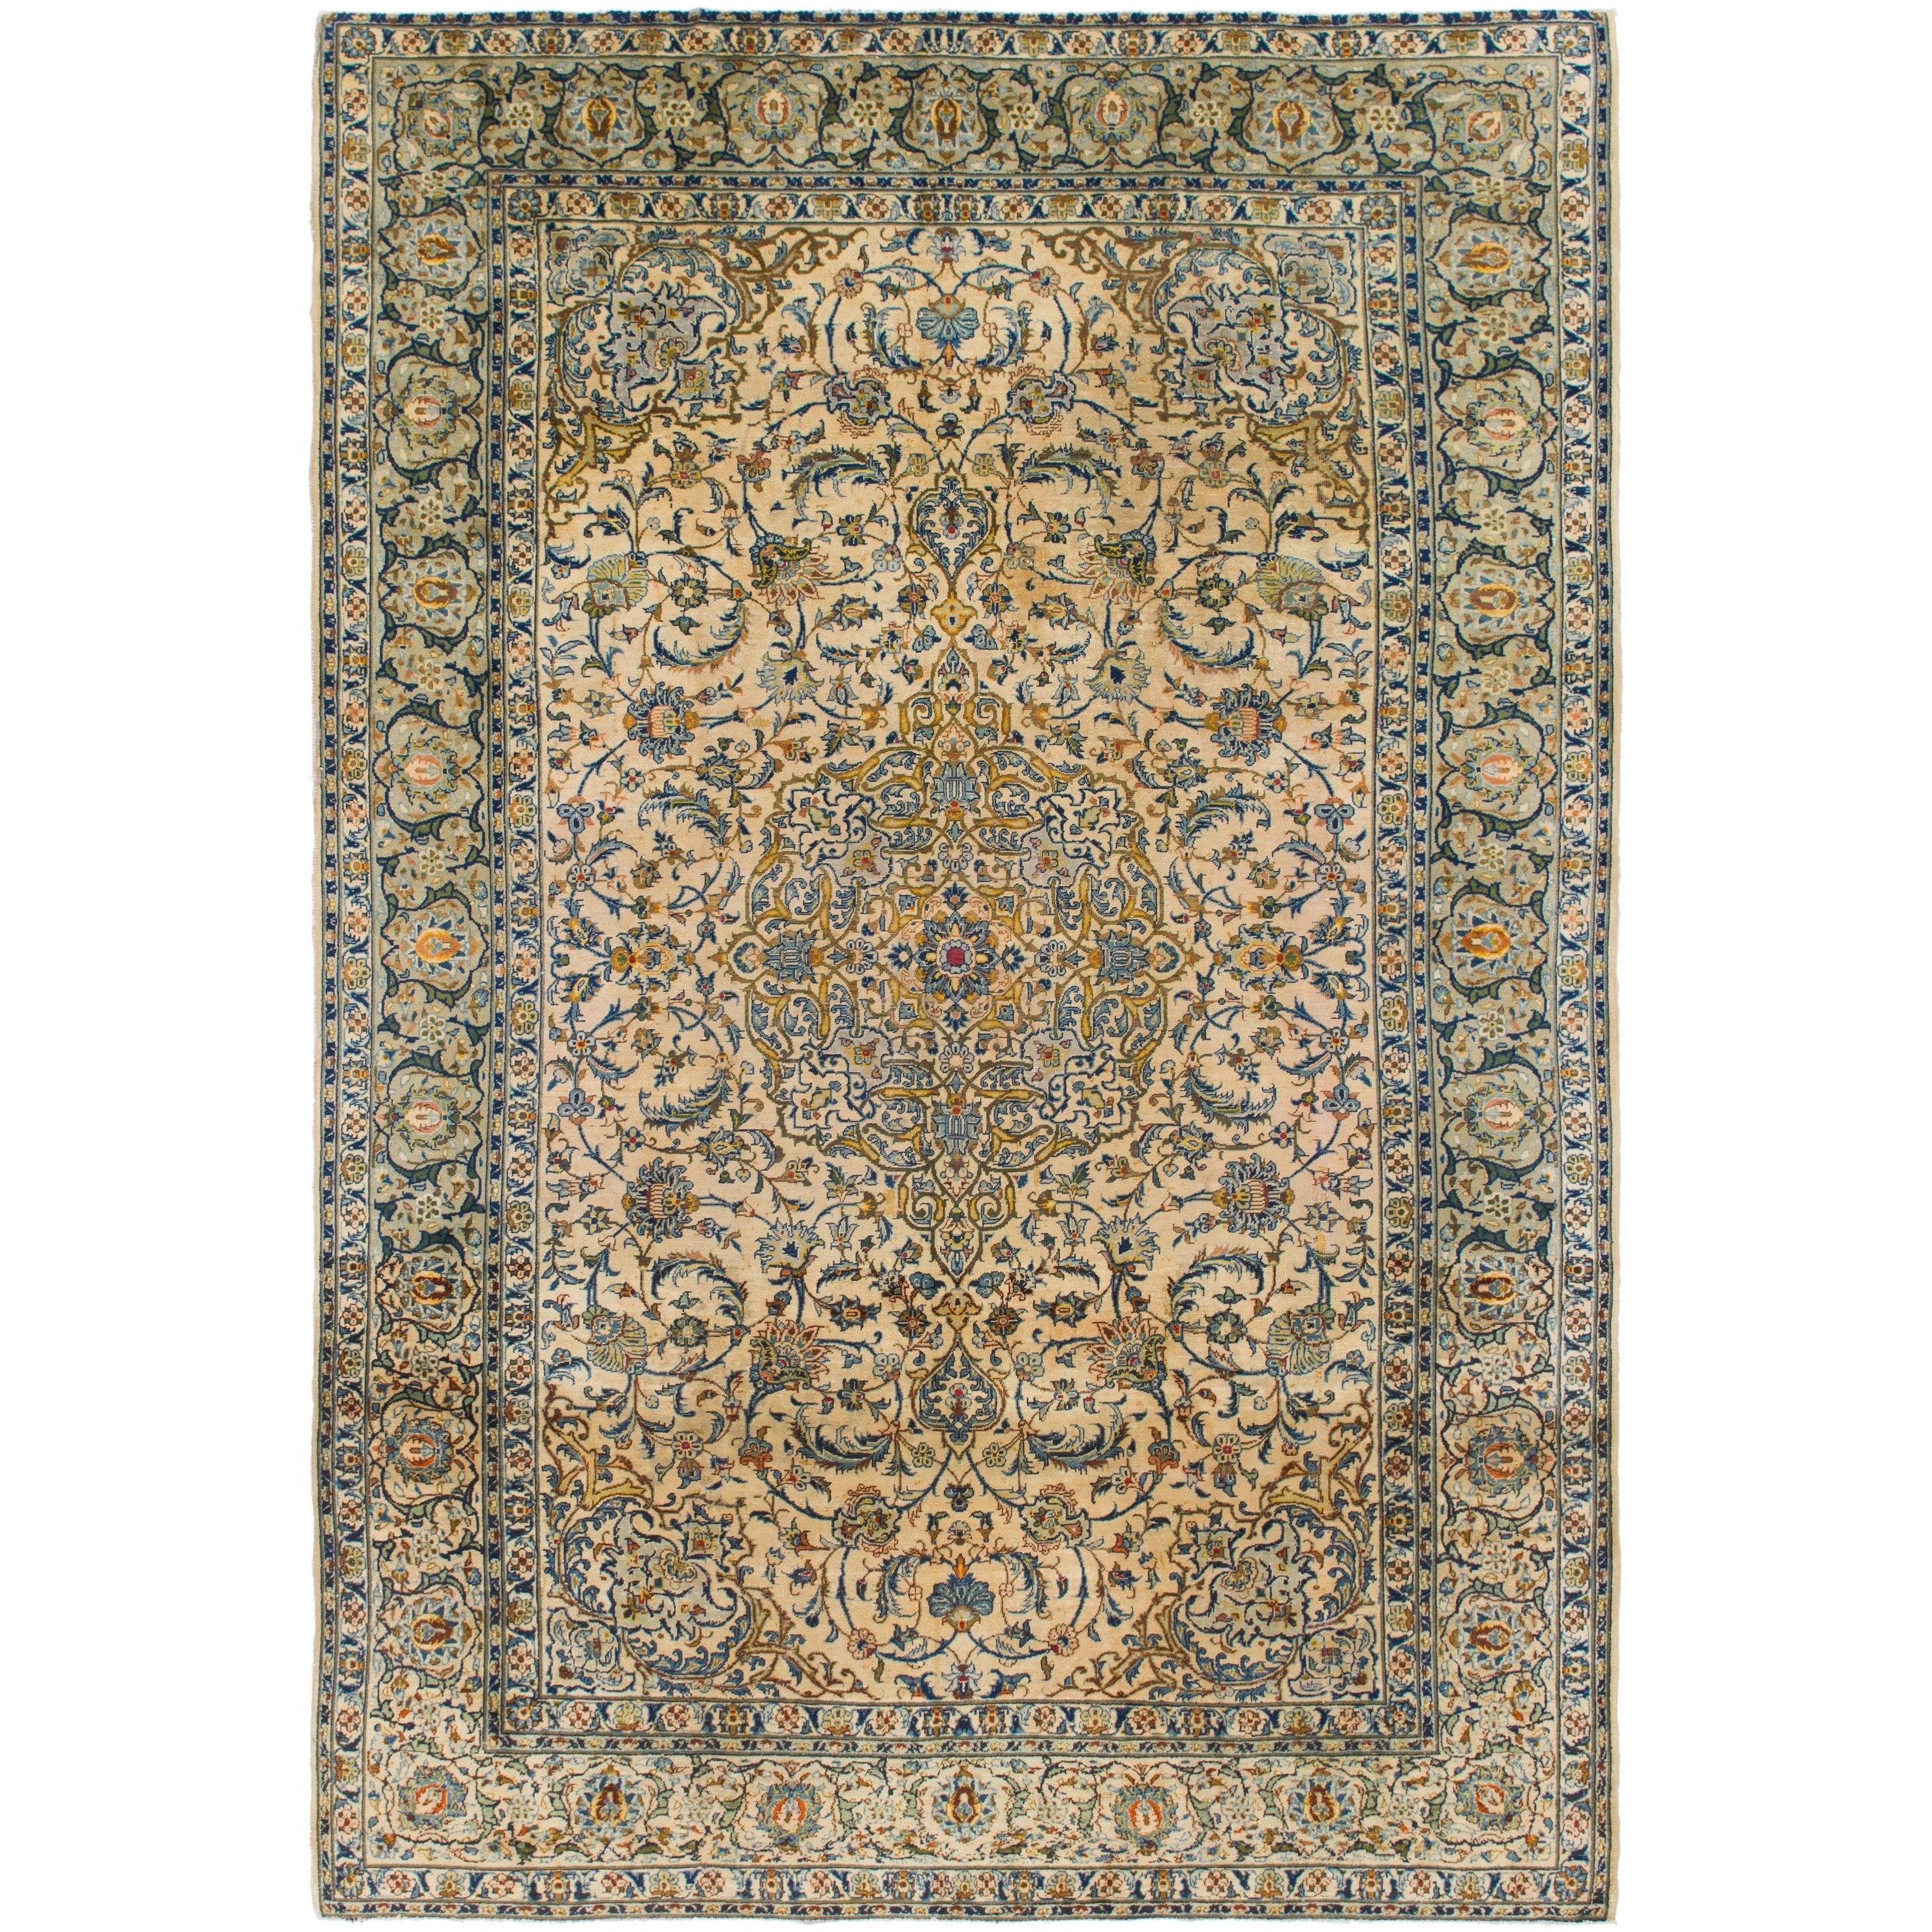 Hand Knotted Kashan Antique Wool Area Rug - 8 6 x 12 8 (Ivory - 8 6 x 12 8)